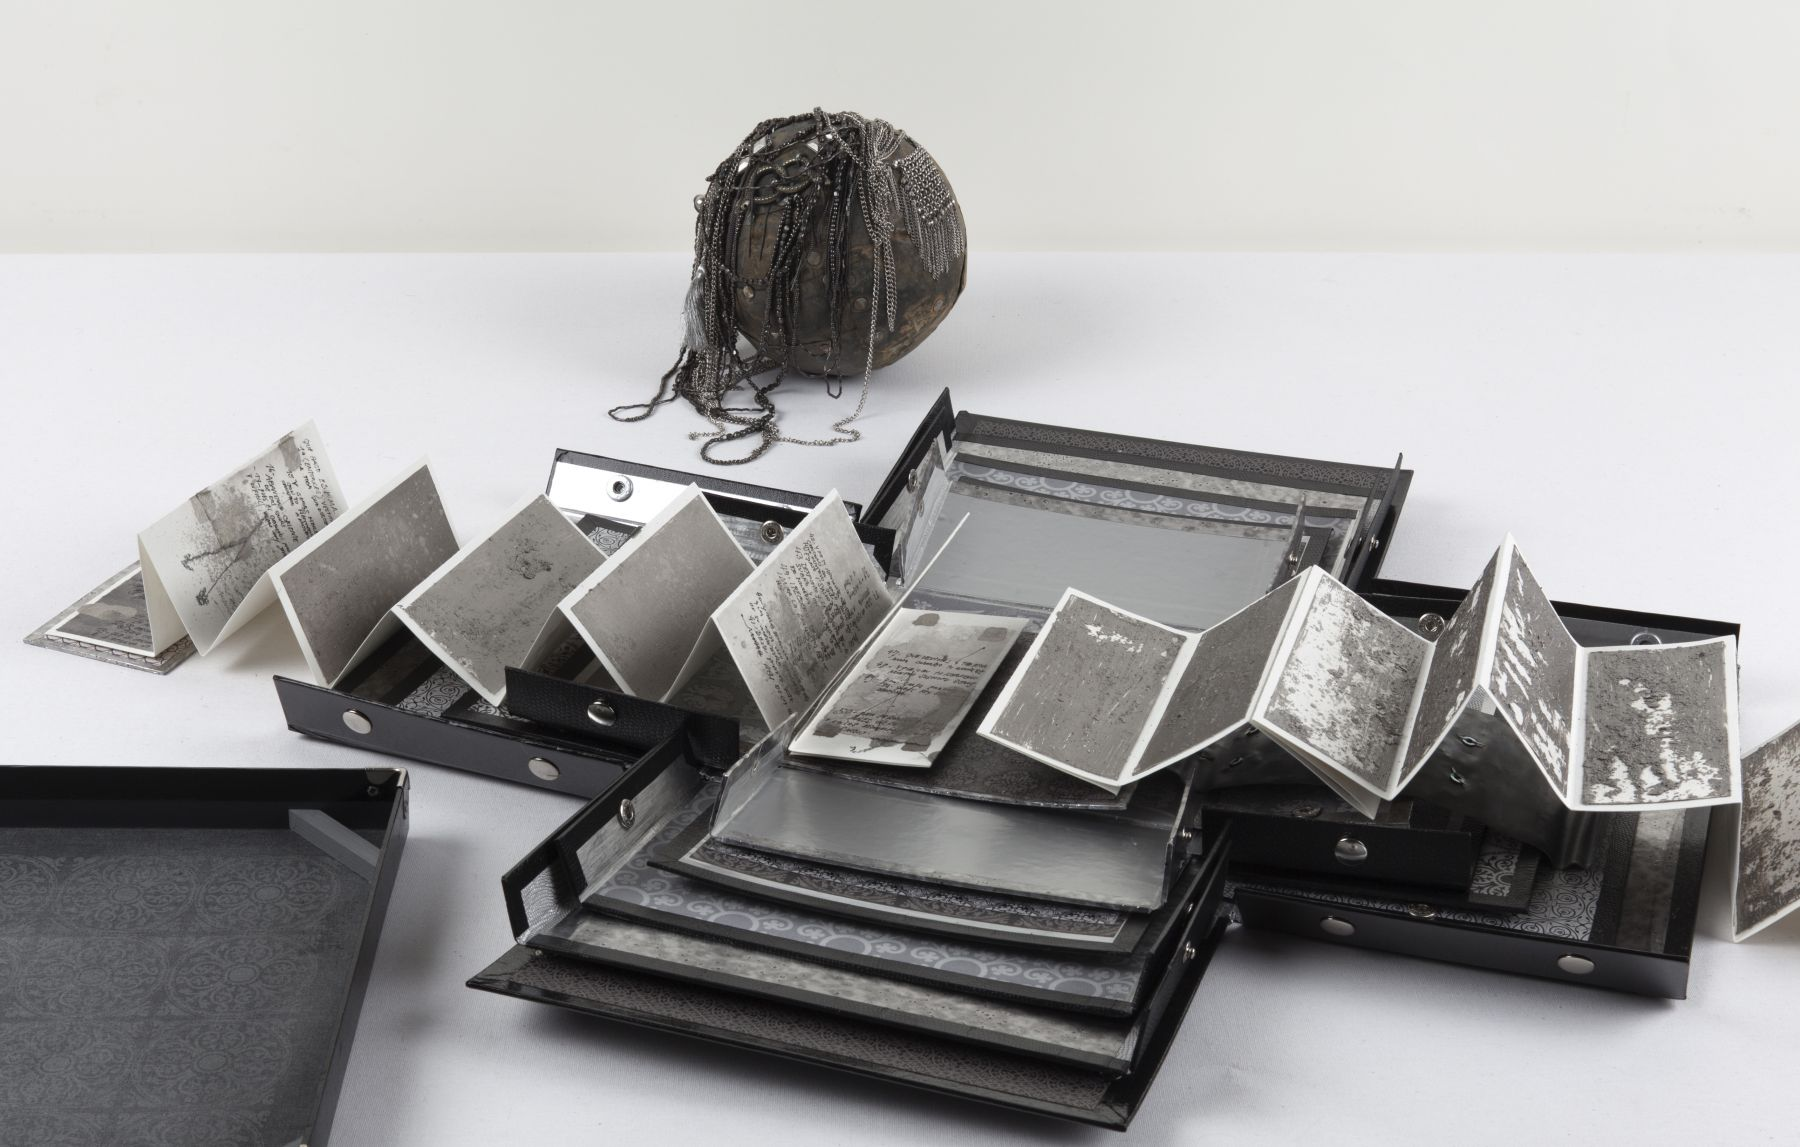 Silver, 2011 Aged silver metallic paper, paper, lead, necklaces, chain, bell, trinkets, one leporello book